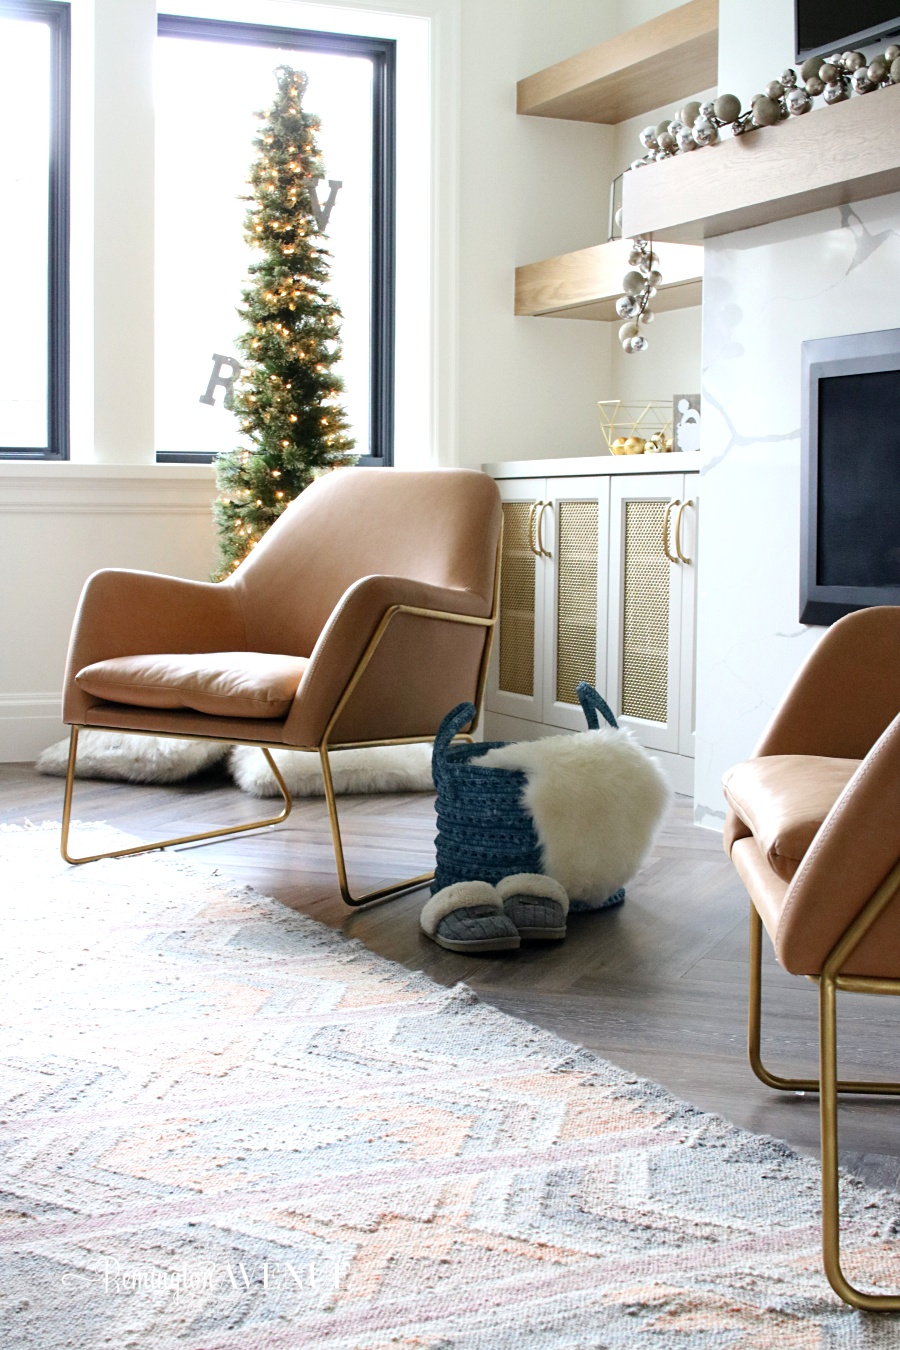 Welcome to my new family friendly modern living room.  Did you know that modern and family friendly could exist in the same room?  Yes indeed they can.  I am so excited to partner with Article for this holiday room reveal.